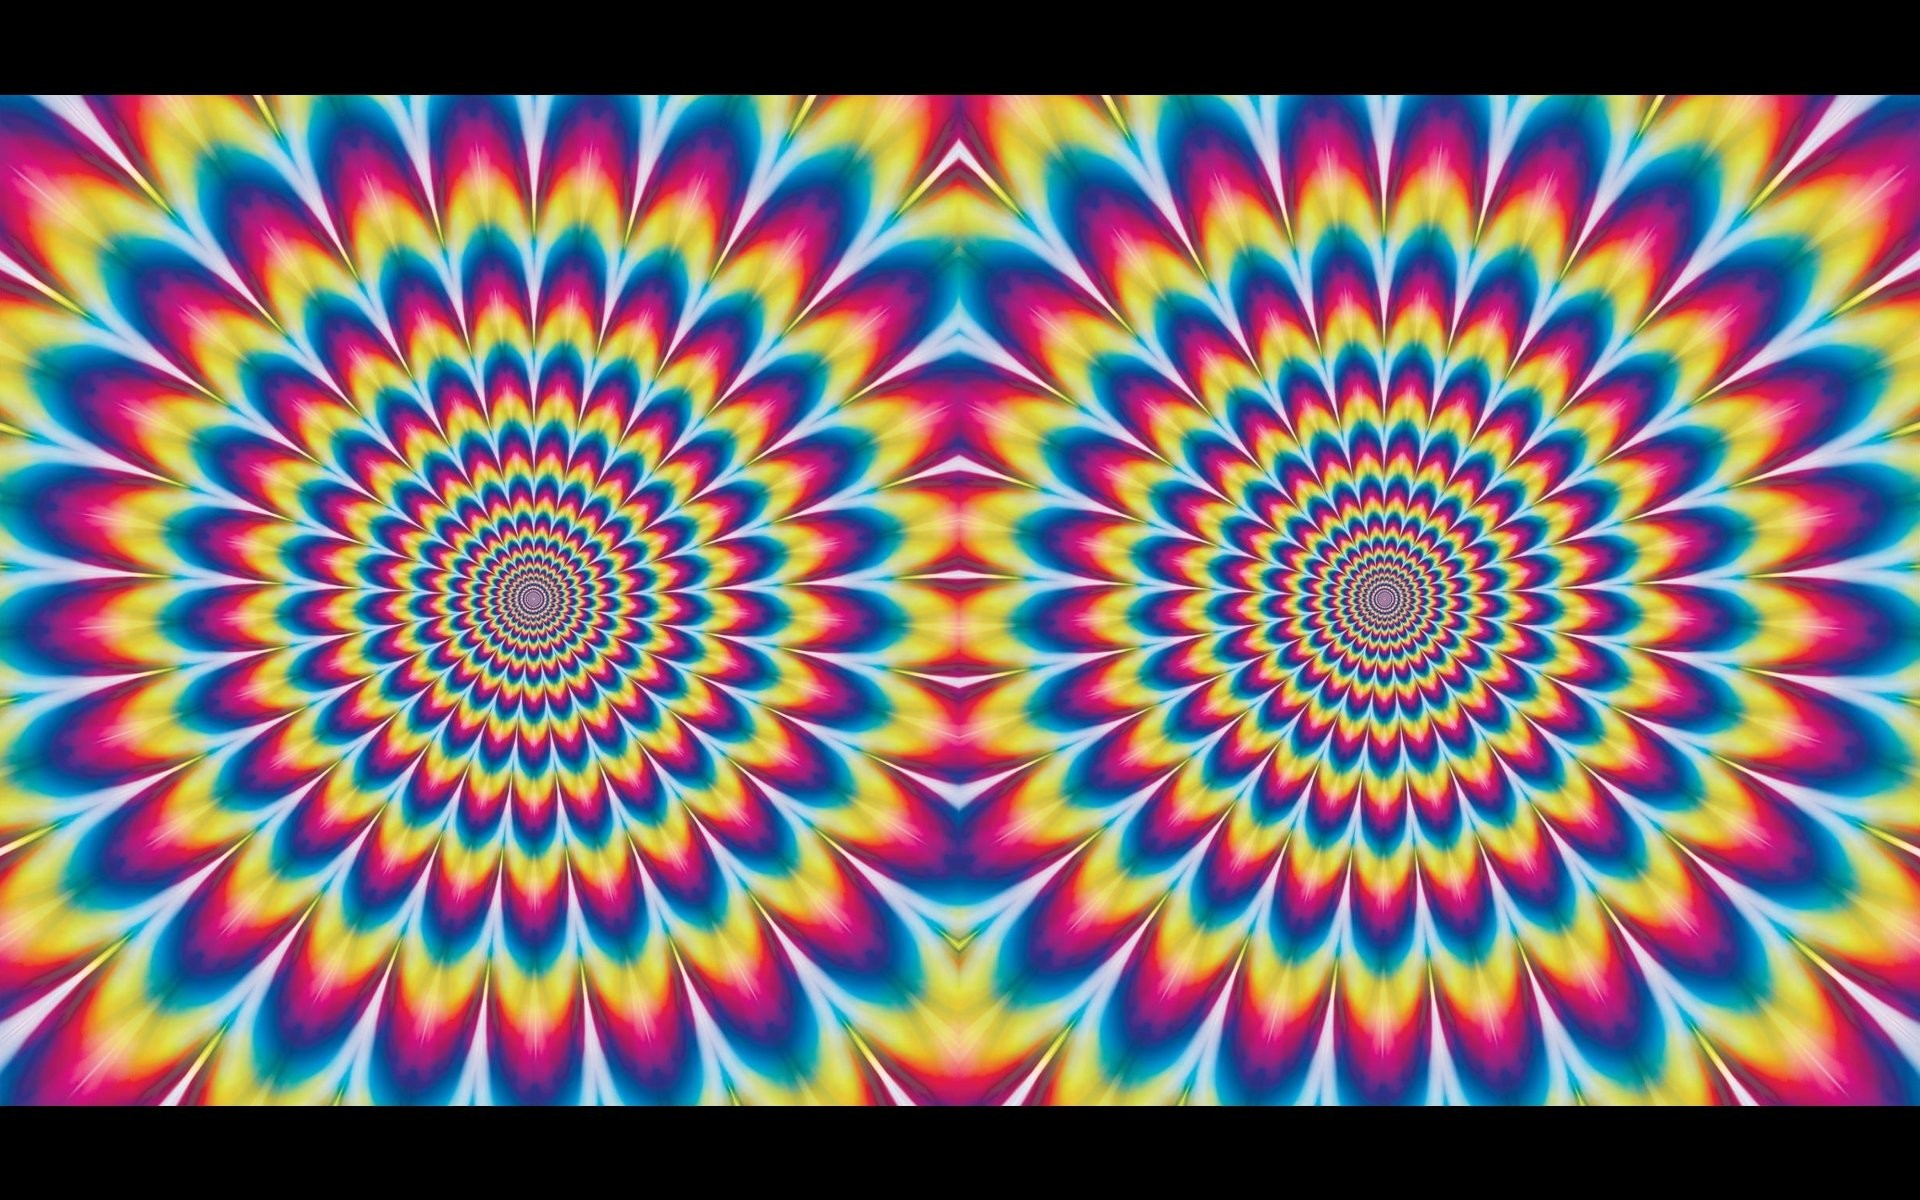 Res: 1920x1200, Optical Illusions Wallpapers Walldevil With Decoration Splendid Photo Illusion  Wallpaper